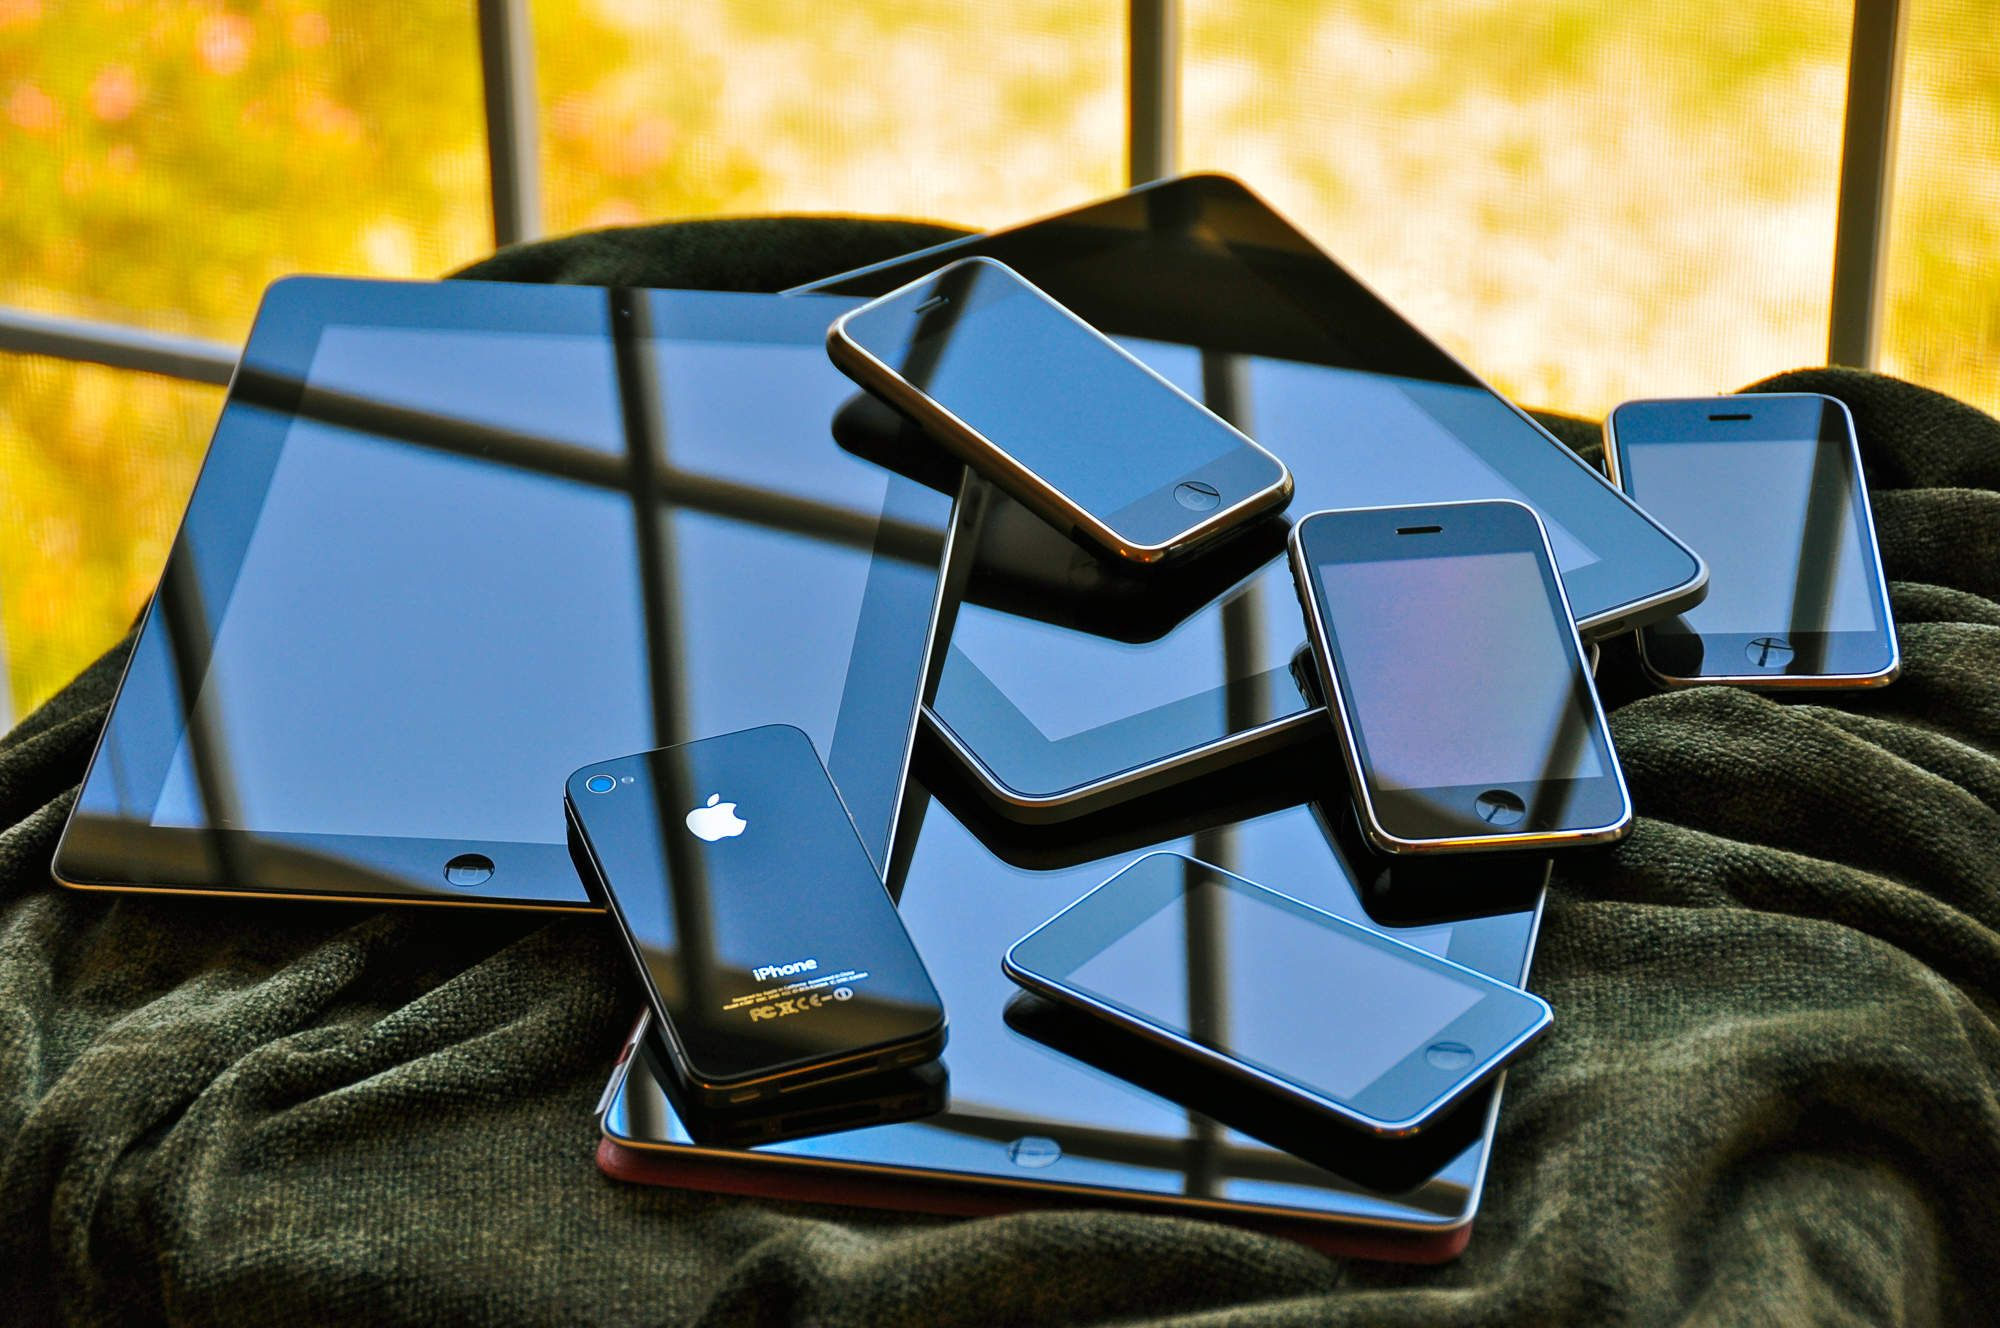 14 Smart Uses For Old Iphones Besides Selling Them On Ebay Iphone Old Technology Iphone Gadgets